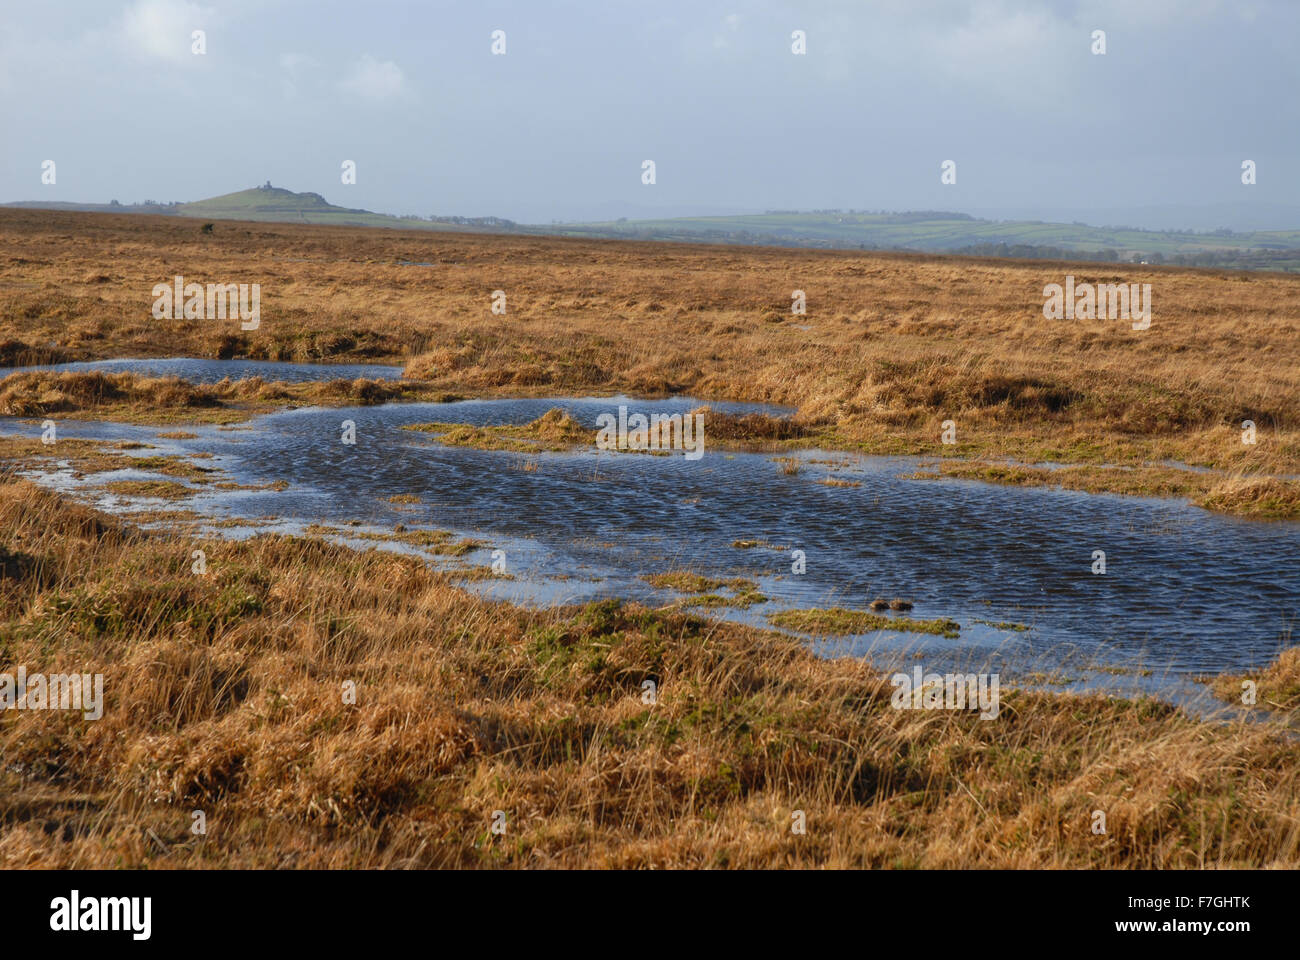 The moors in winter, Dartmoor National Park, Devon, England Stock Photo